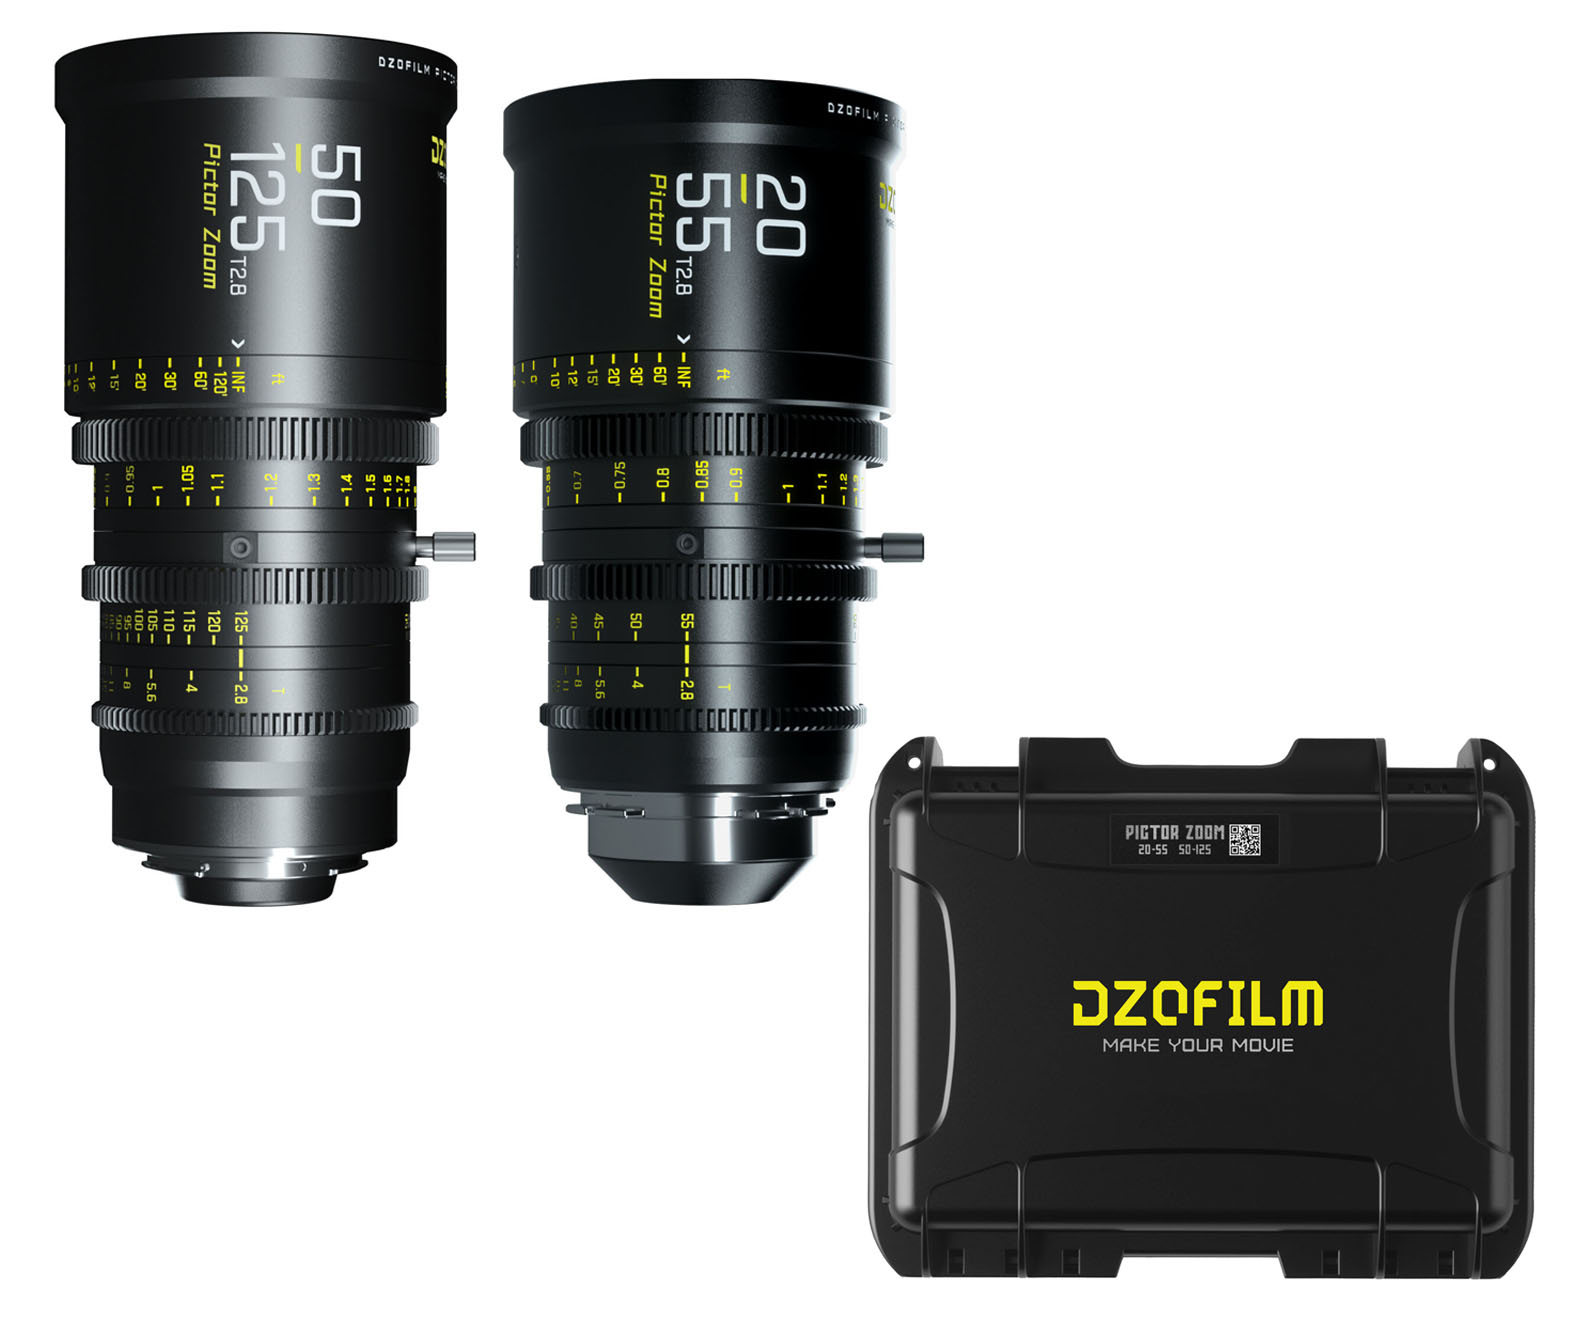 DZOFilm 50-125mm and 20-55mm T2.8 Pictor Zoom Lens Bundle with Case - PL/EF Mount